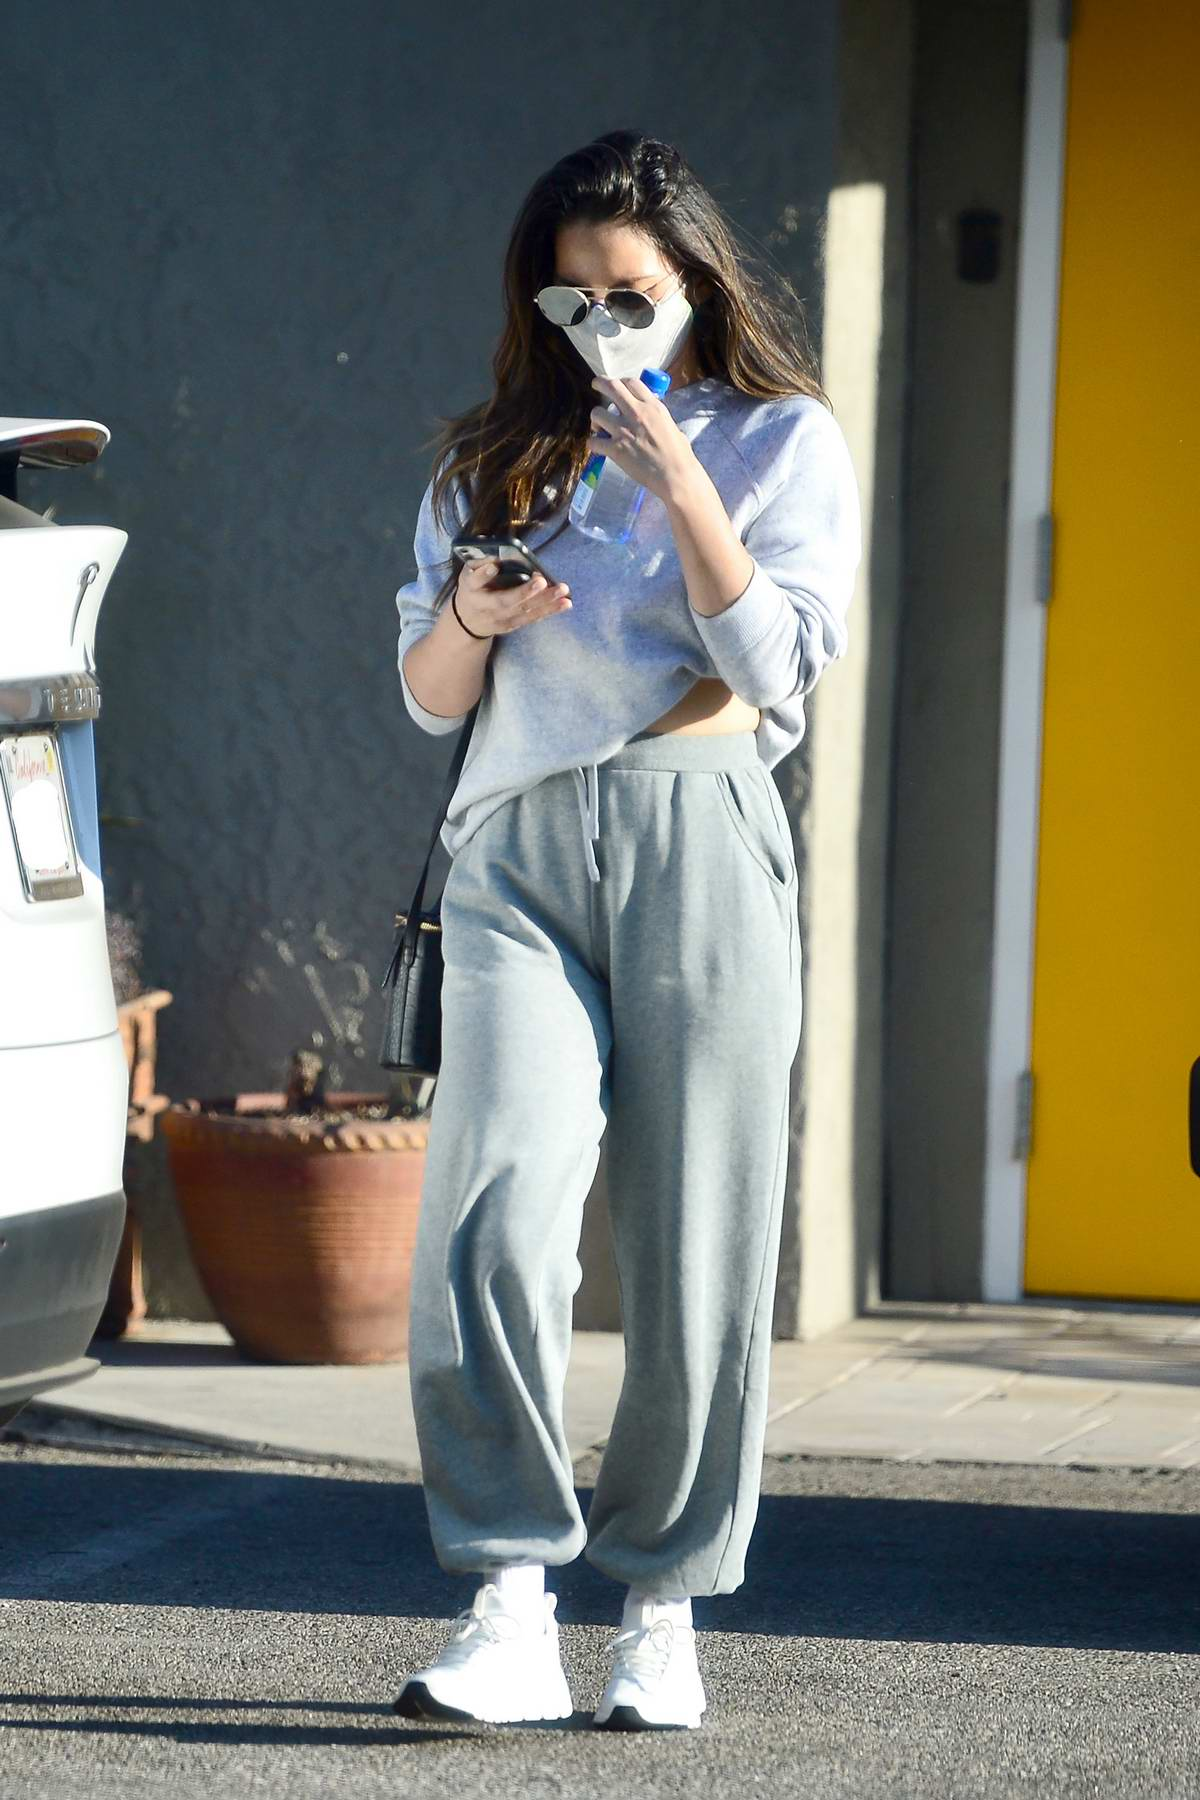 Olivia Munn looked busy on her phone as she leaves the gym after a workout in Los Angeles